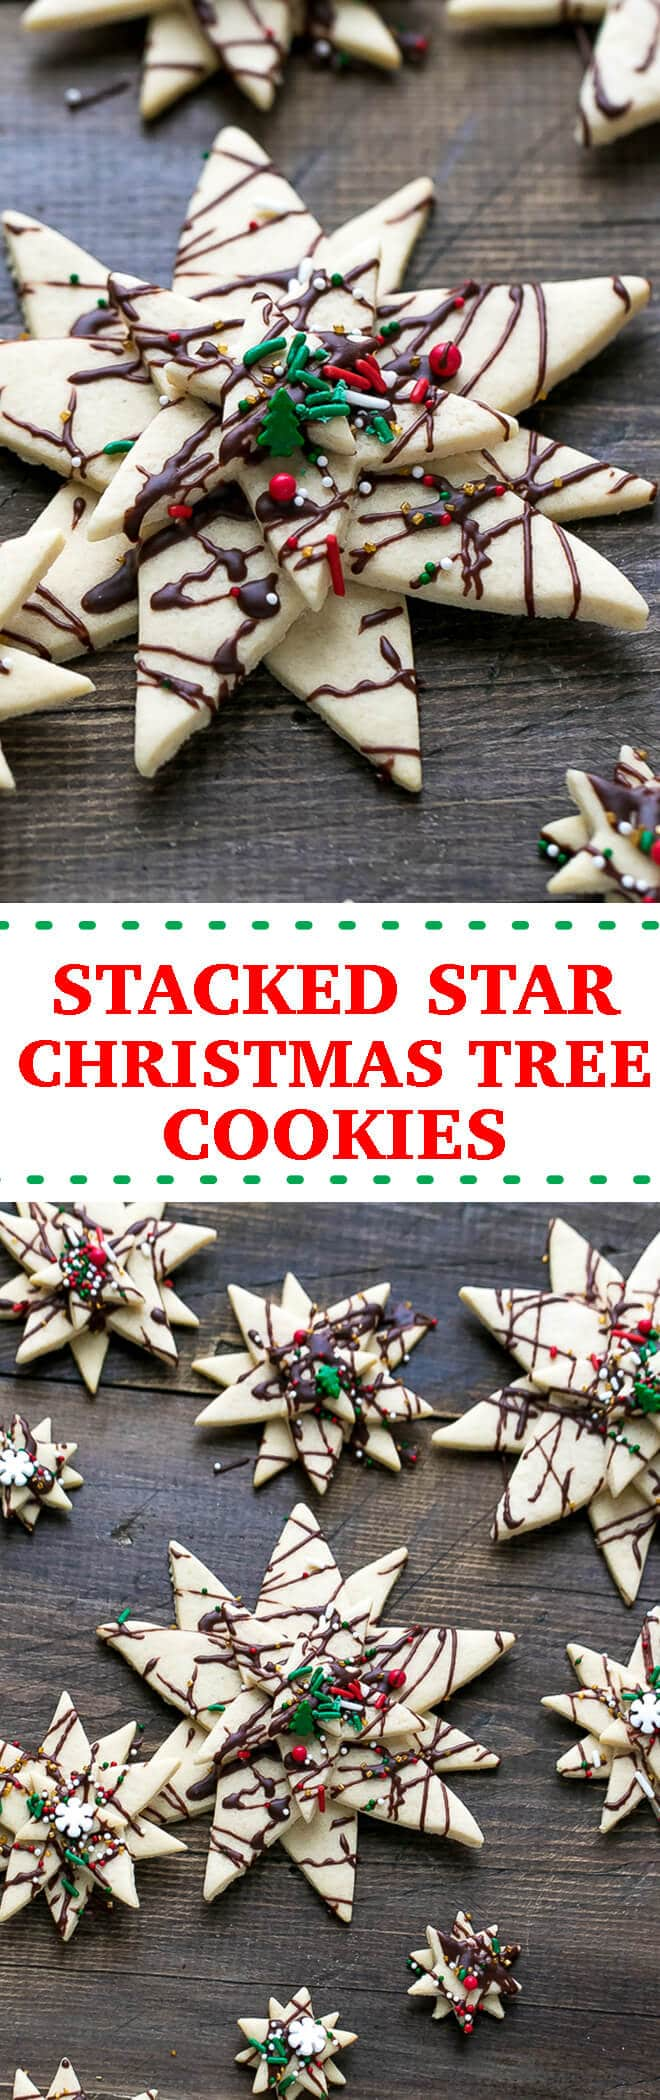 Stacked Star Christmas Tree Sugar Cookies Recipe - extremely easy to make, cute, delicious and festive! Cut out sugar cookie in three different sizes, stacked together with melted chocolate on top of each other to achieve an impressive Christmas tree cookie look. Drizzled with chocolate and topped with holiday sprinkles.